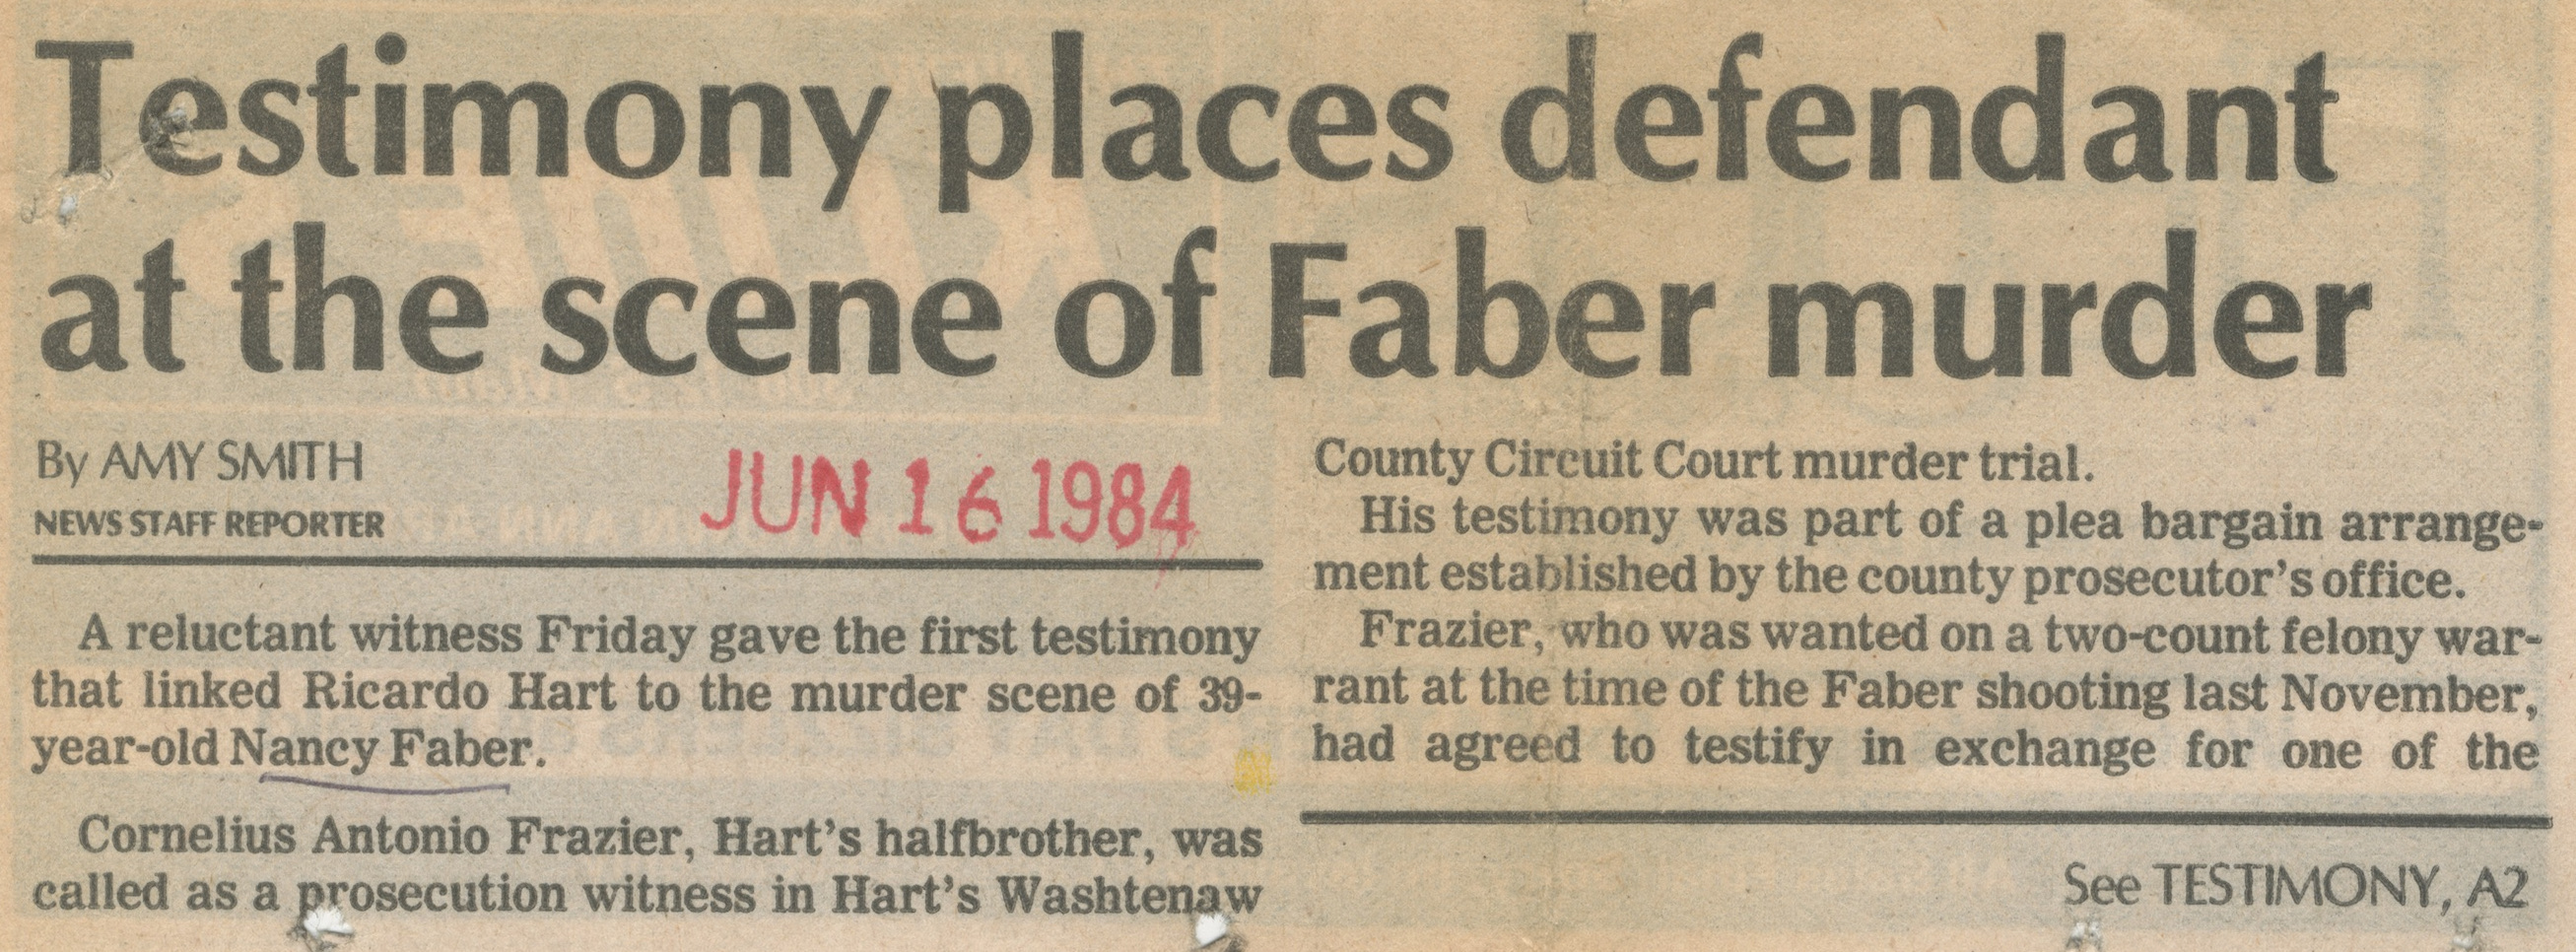 Testimony Places Defendant At The Scene Of Faber Murder image